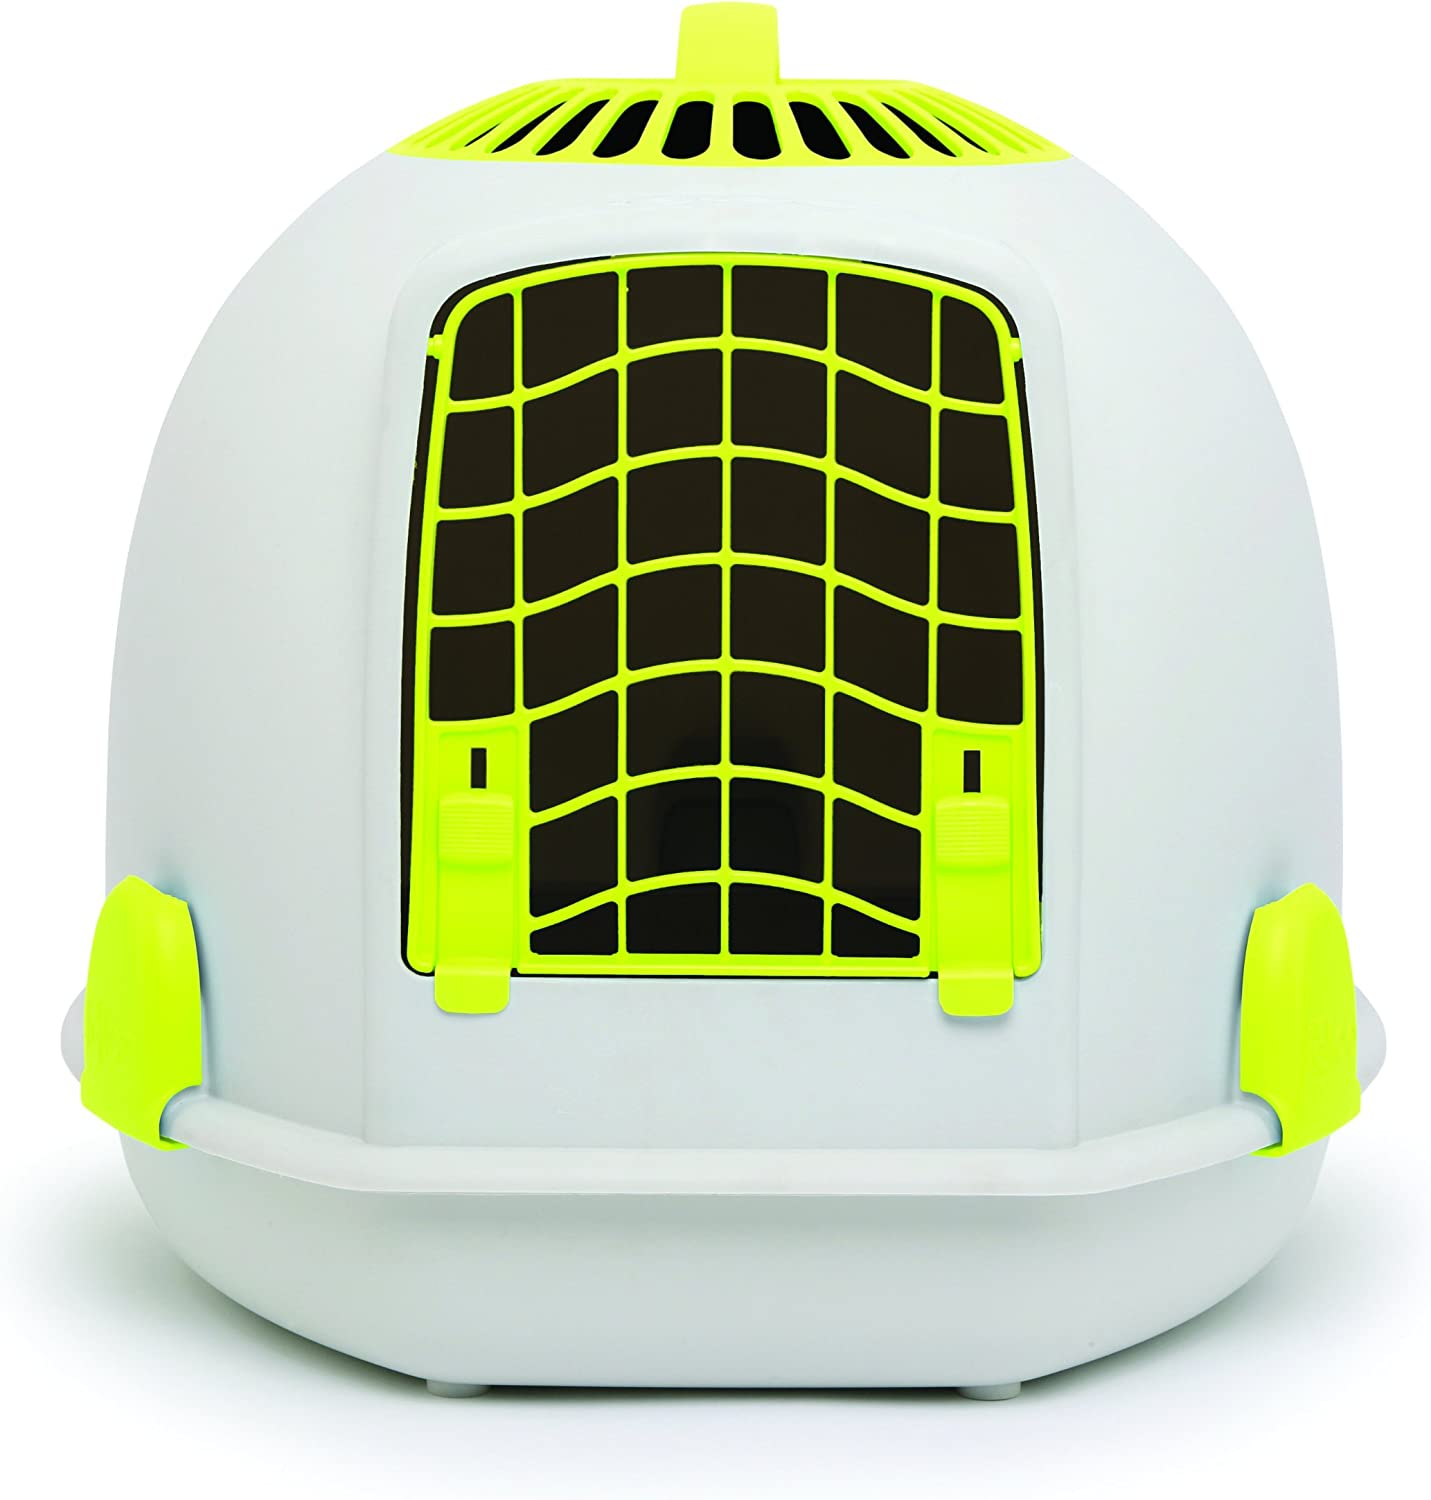 8f31773e2e6be In 1 Cat Loo & Carrier Sunrise Yellow Igloo 2 nuwzkp6193-New pet ...